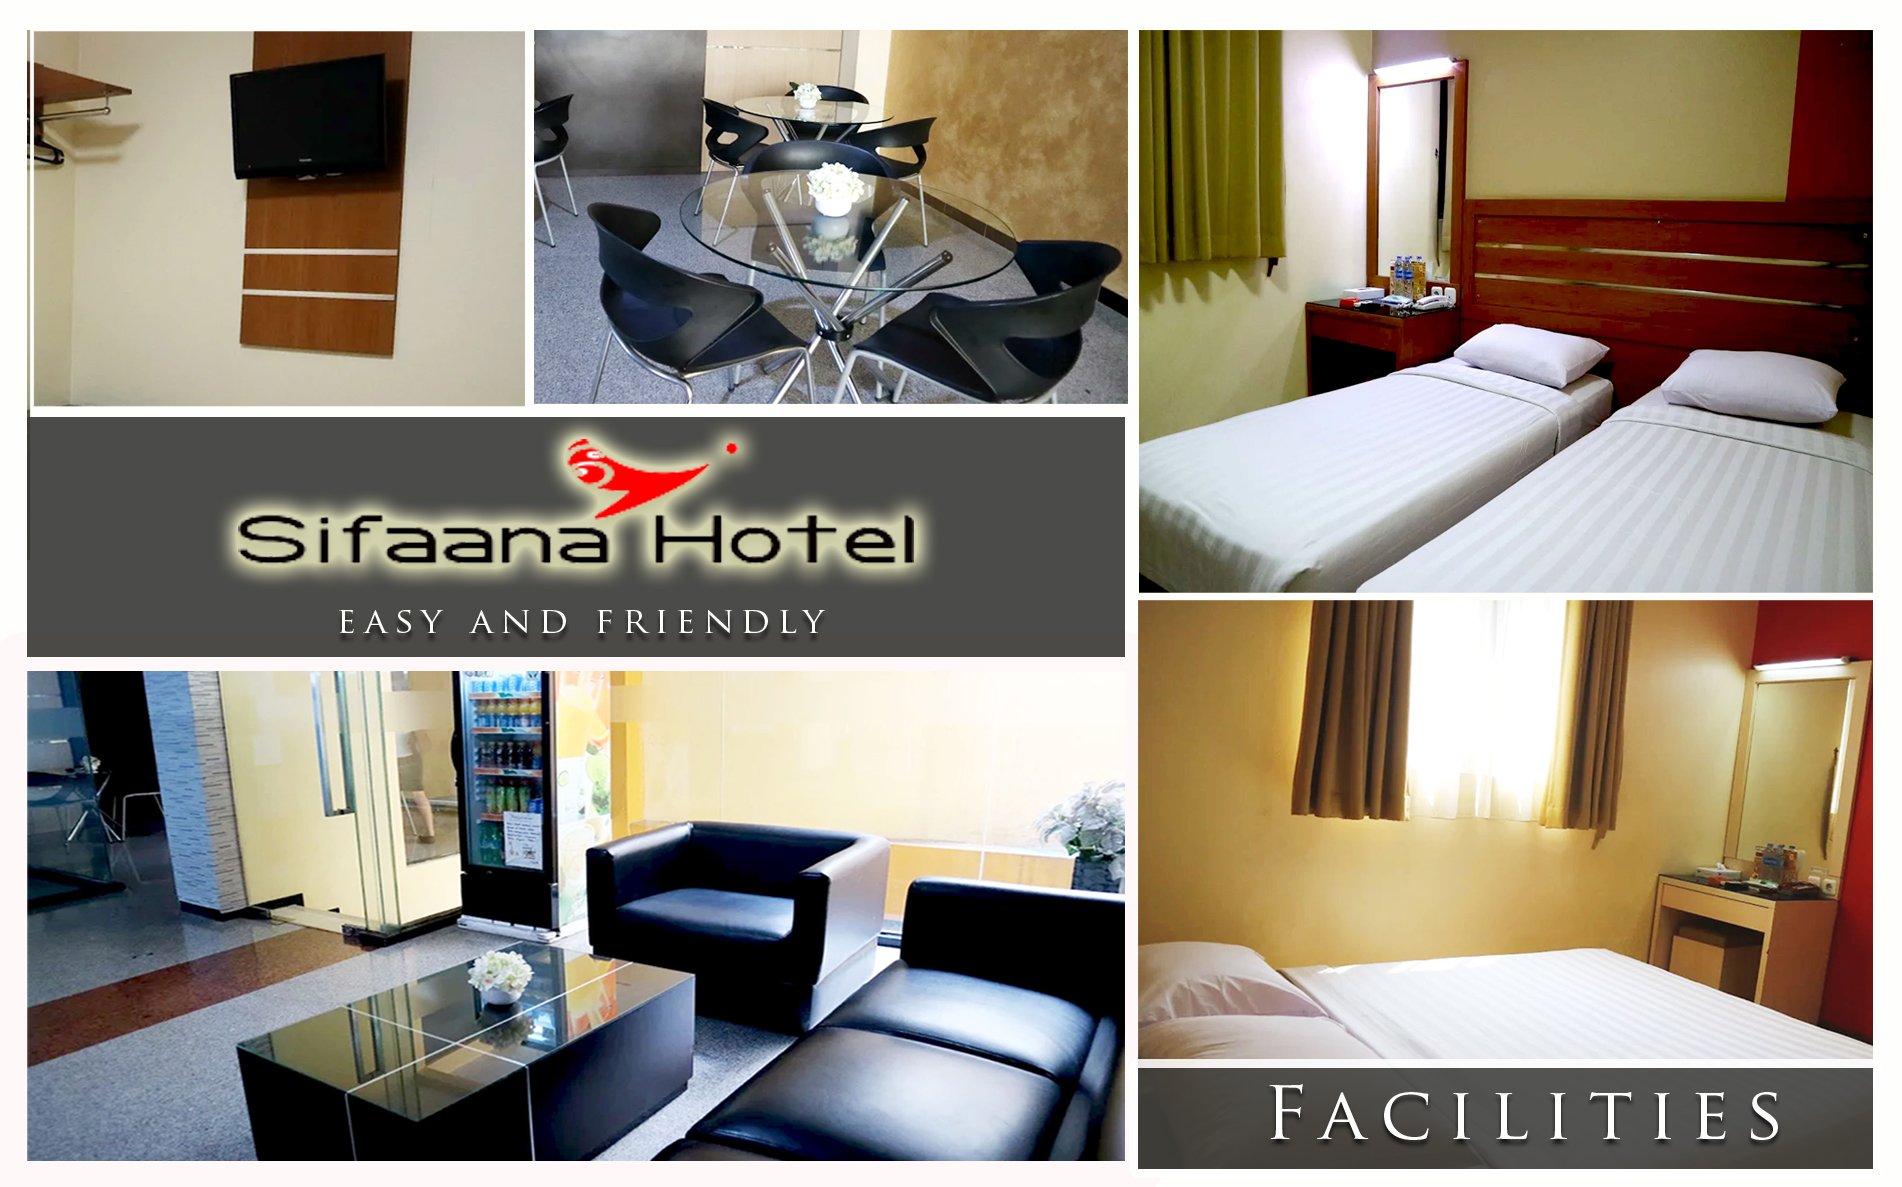 Sifaana Hotel Is A Smart Choice For Those Of You Who Looking Comfort And Ease In Doing Various Business While Enjoying Quality Time With Beloved